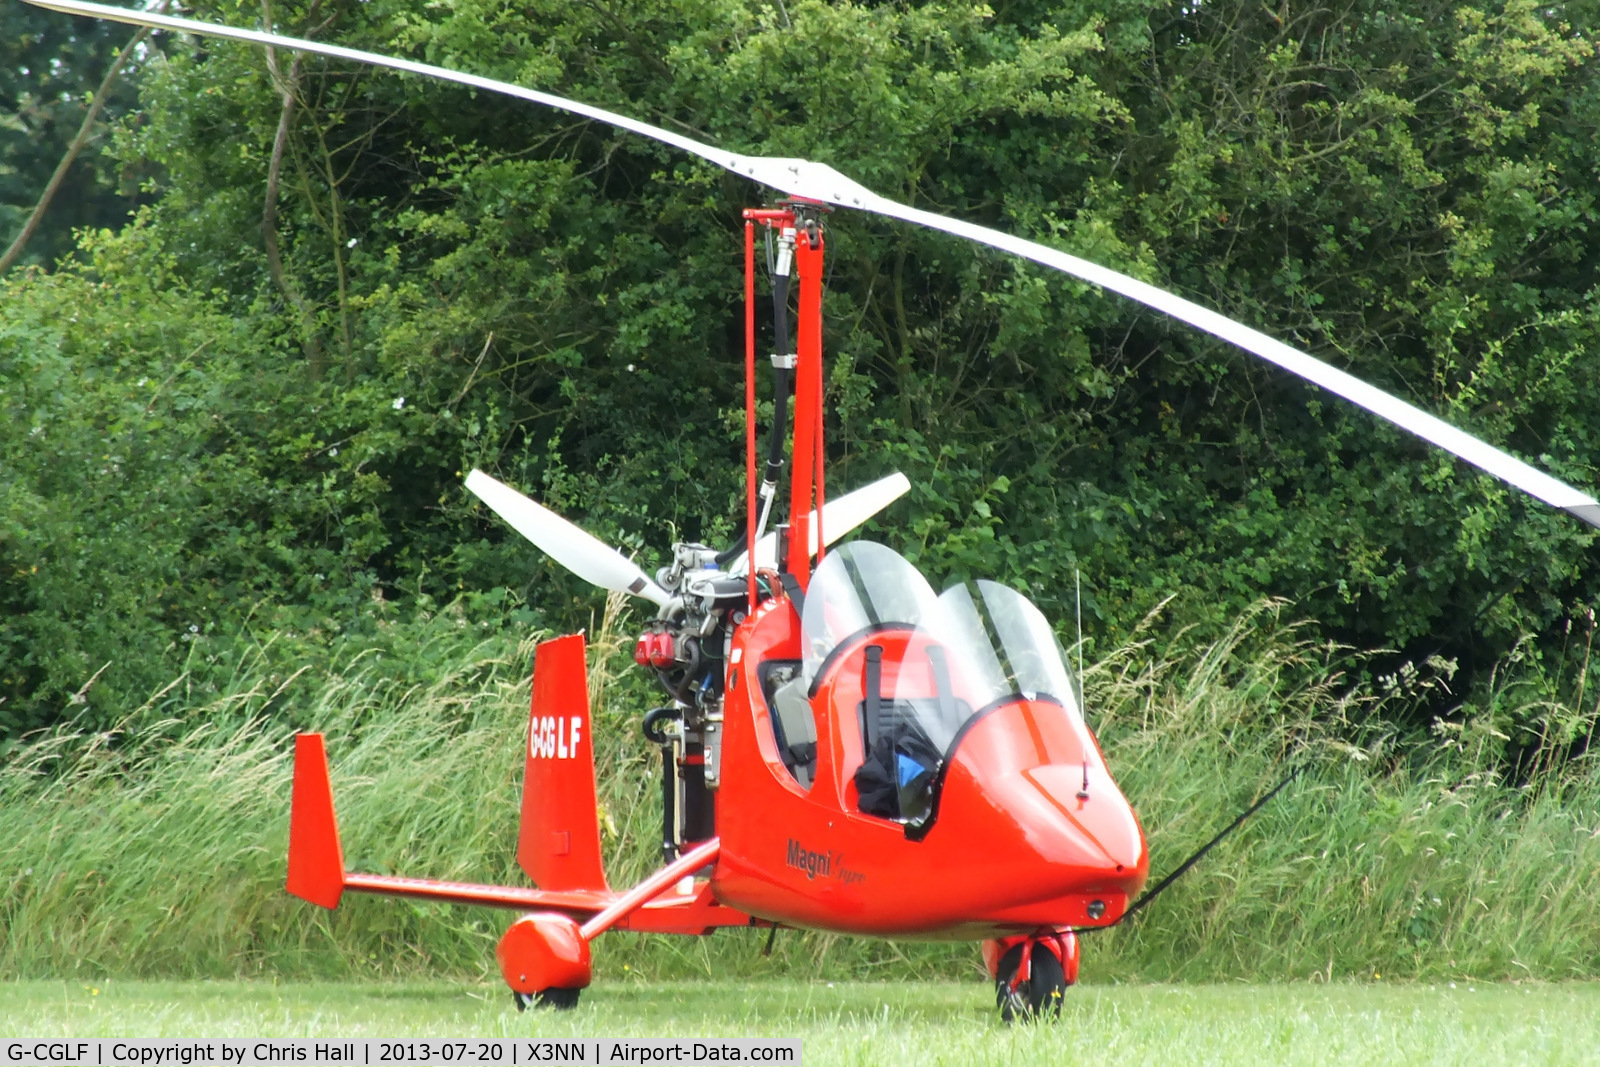 G-CGLF, 2009 Magni Gyro M-16C Tandem Trainer C/N 16-09-5614, at the Stoke Golding stakeout 2013